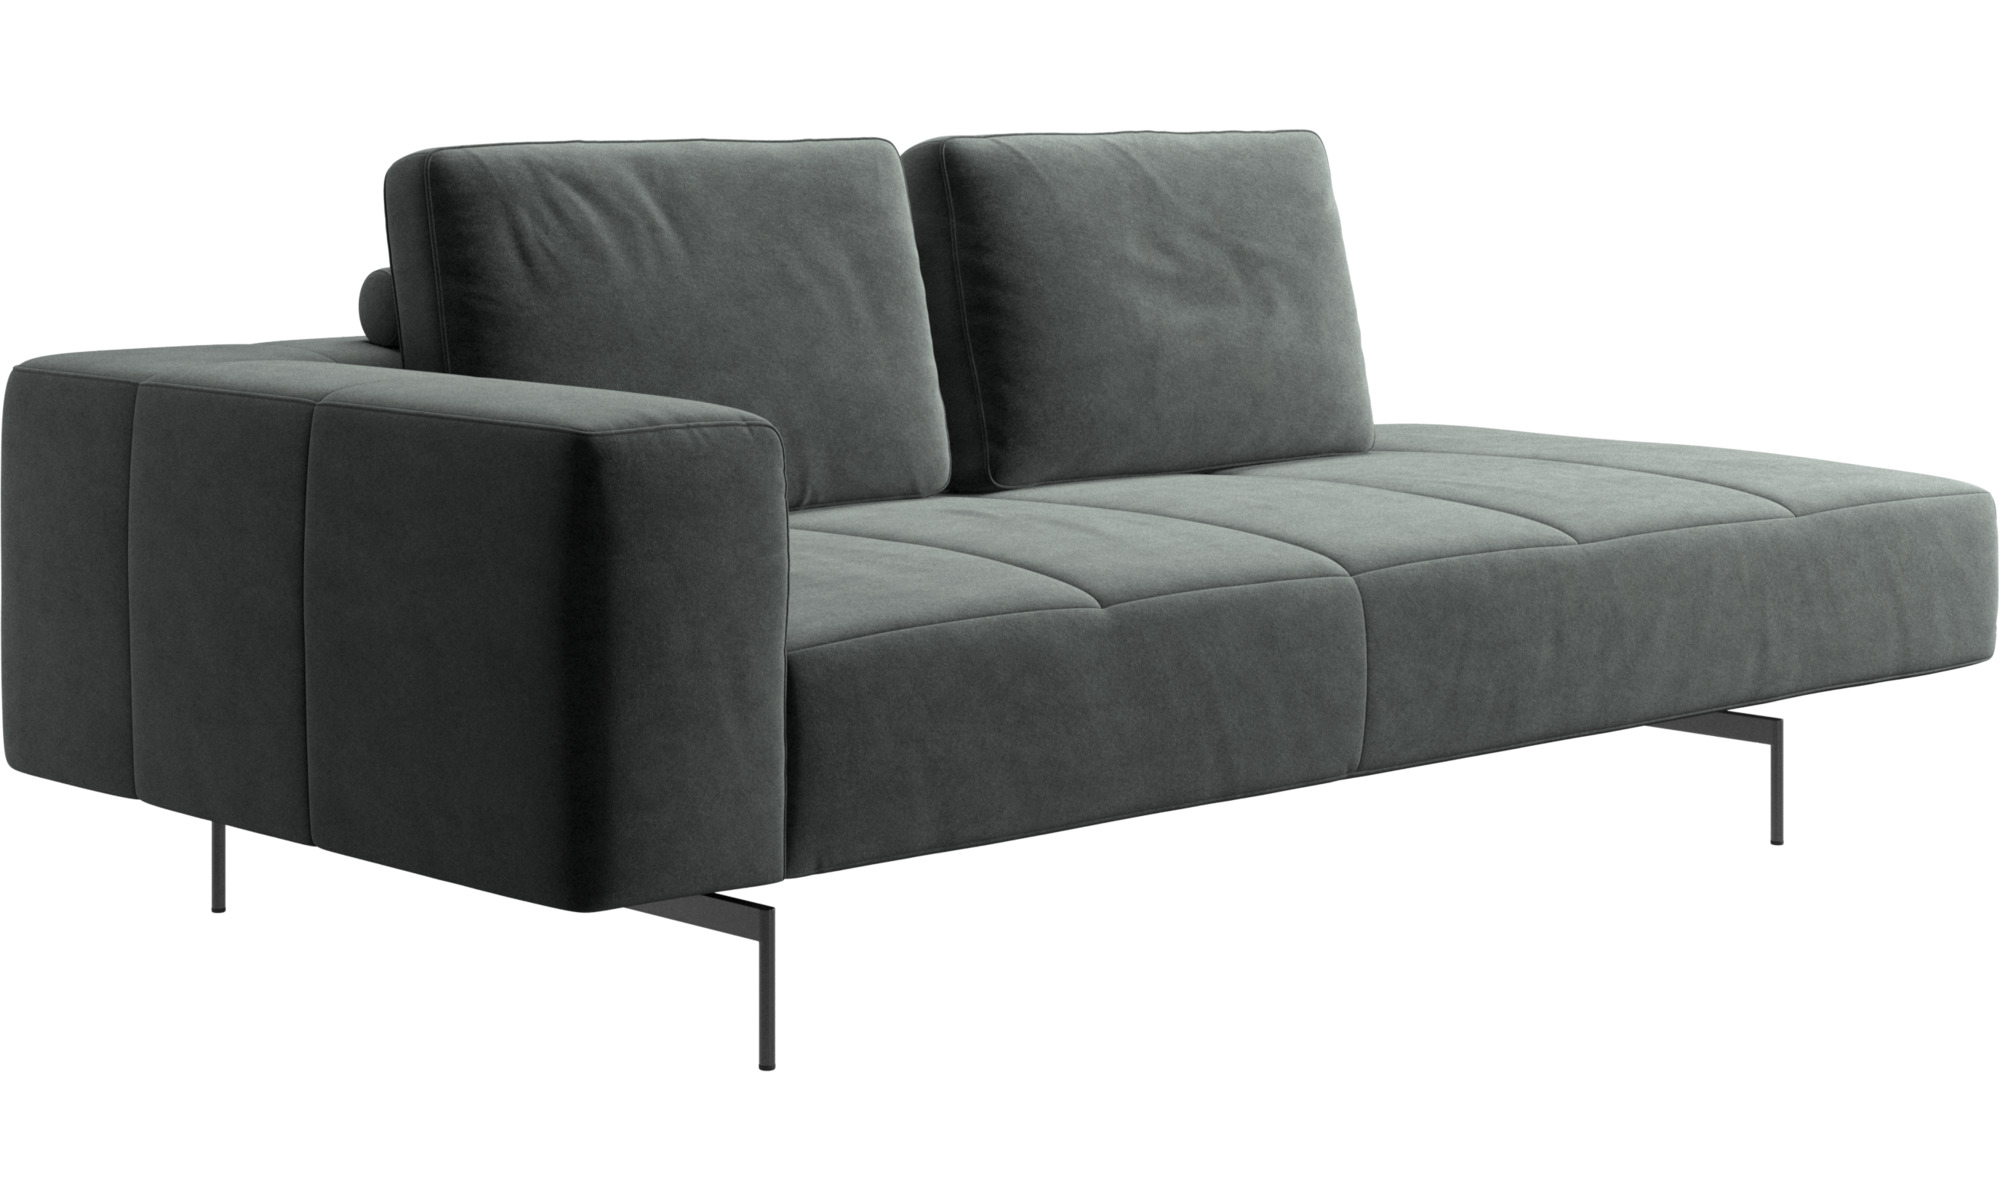 Chaise Lounge Sofas Amsterdam Resting Module For Sofa Large Armrest Right Green